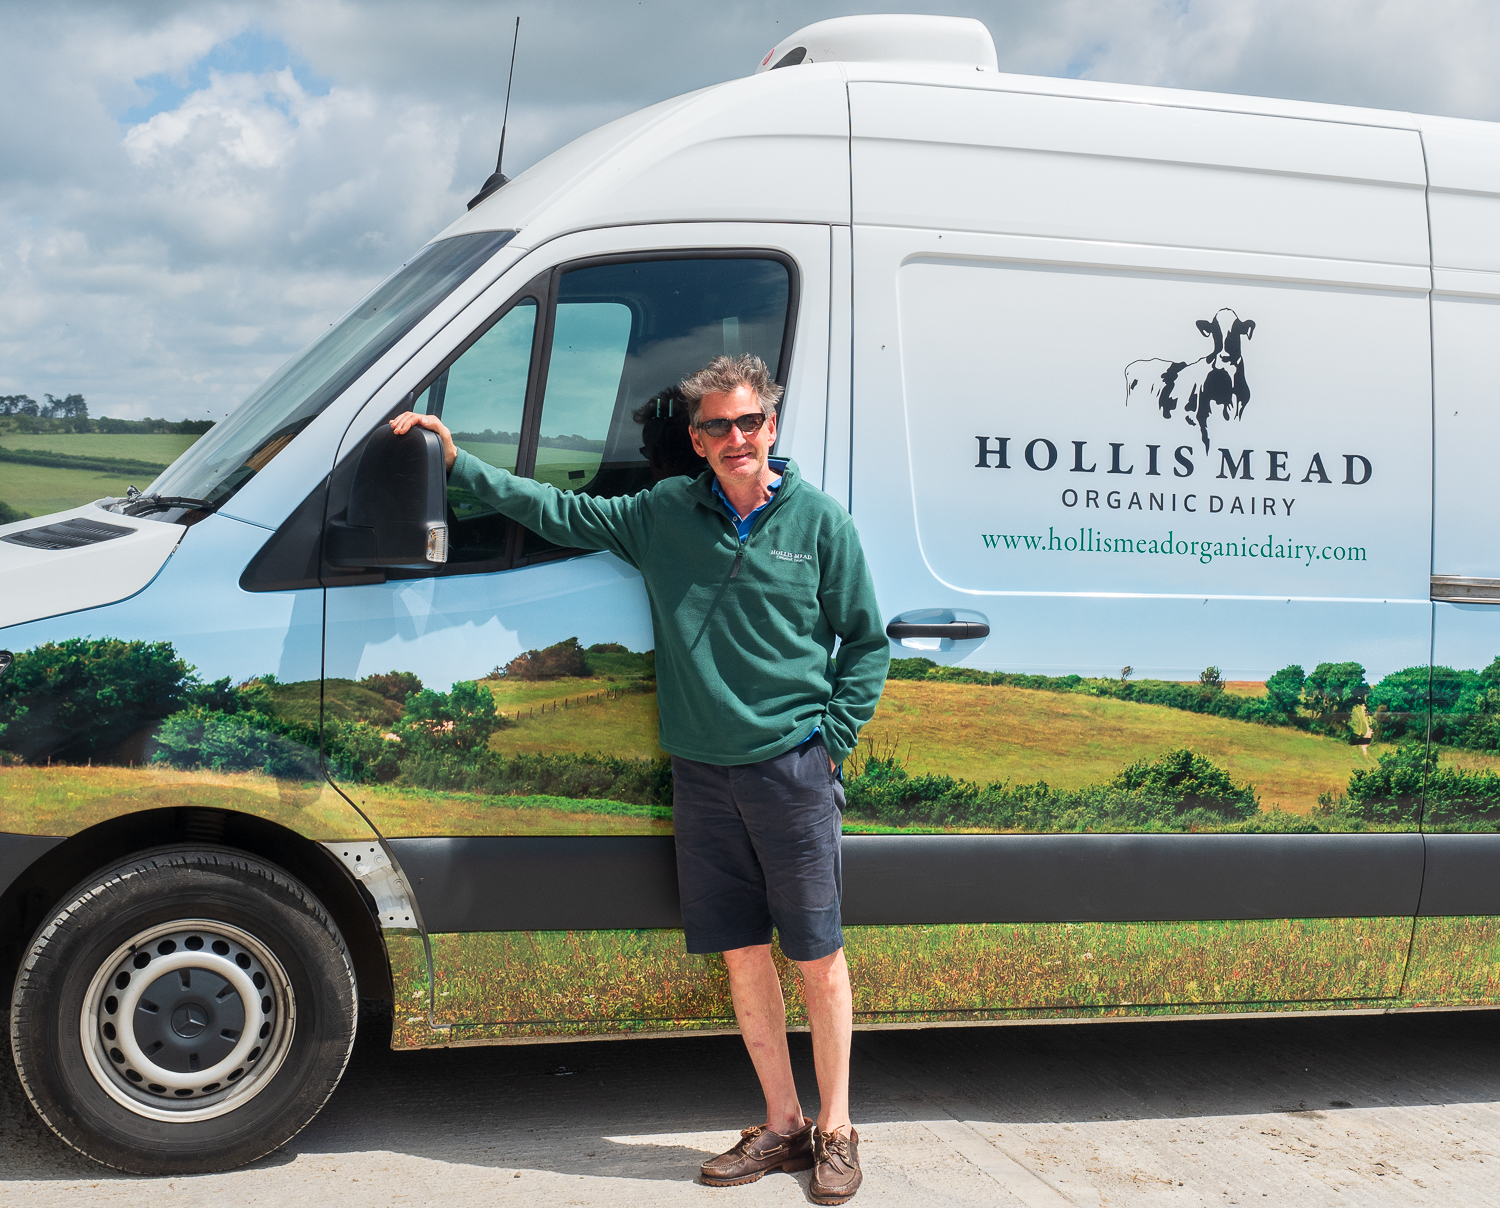 Oliver Hemsley, Hollis Mead Organic Dairy